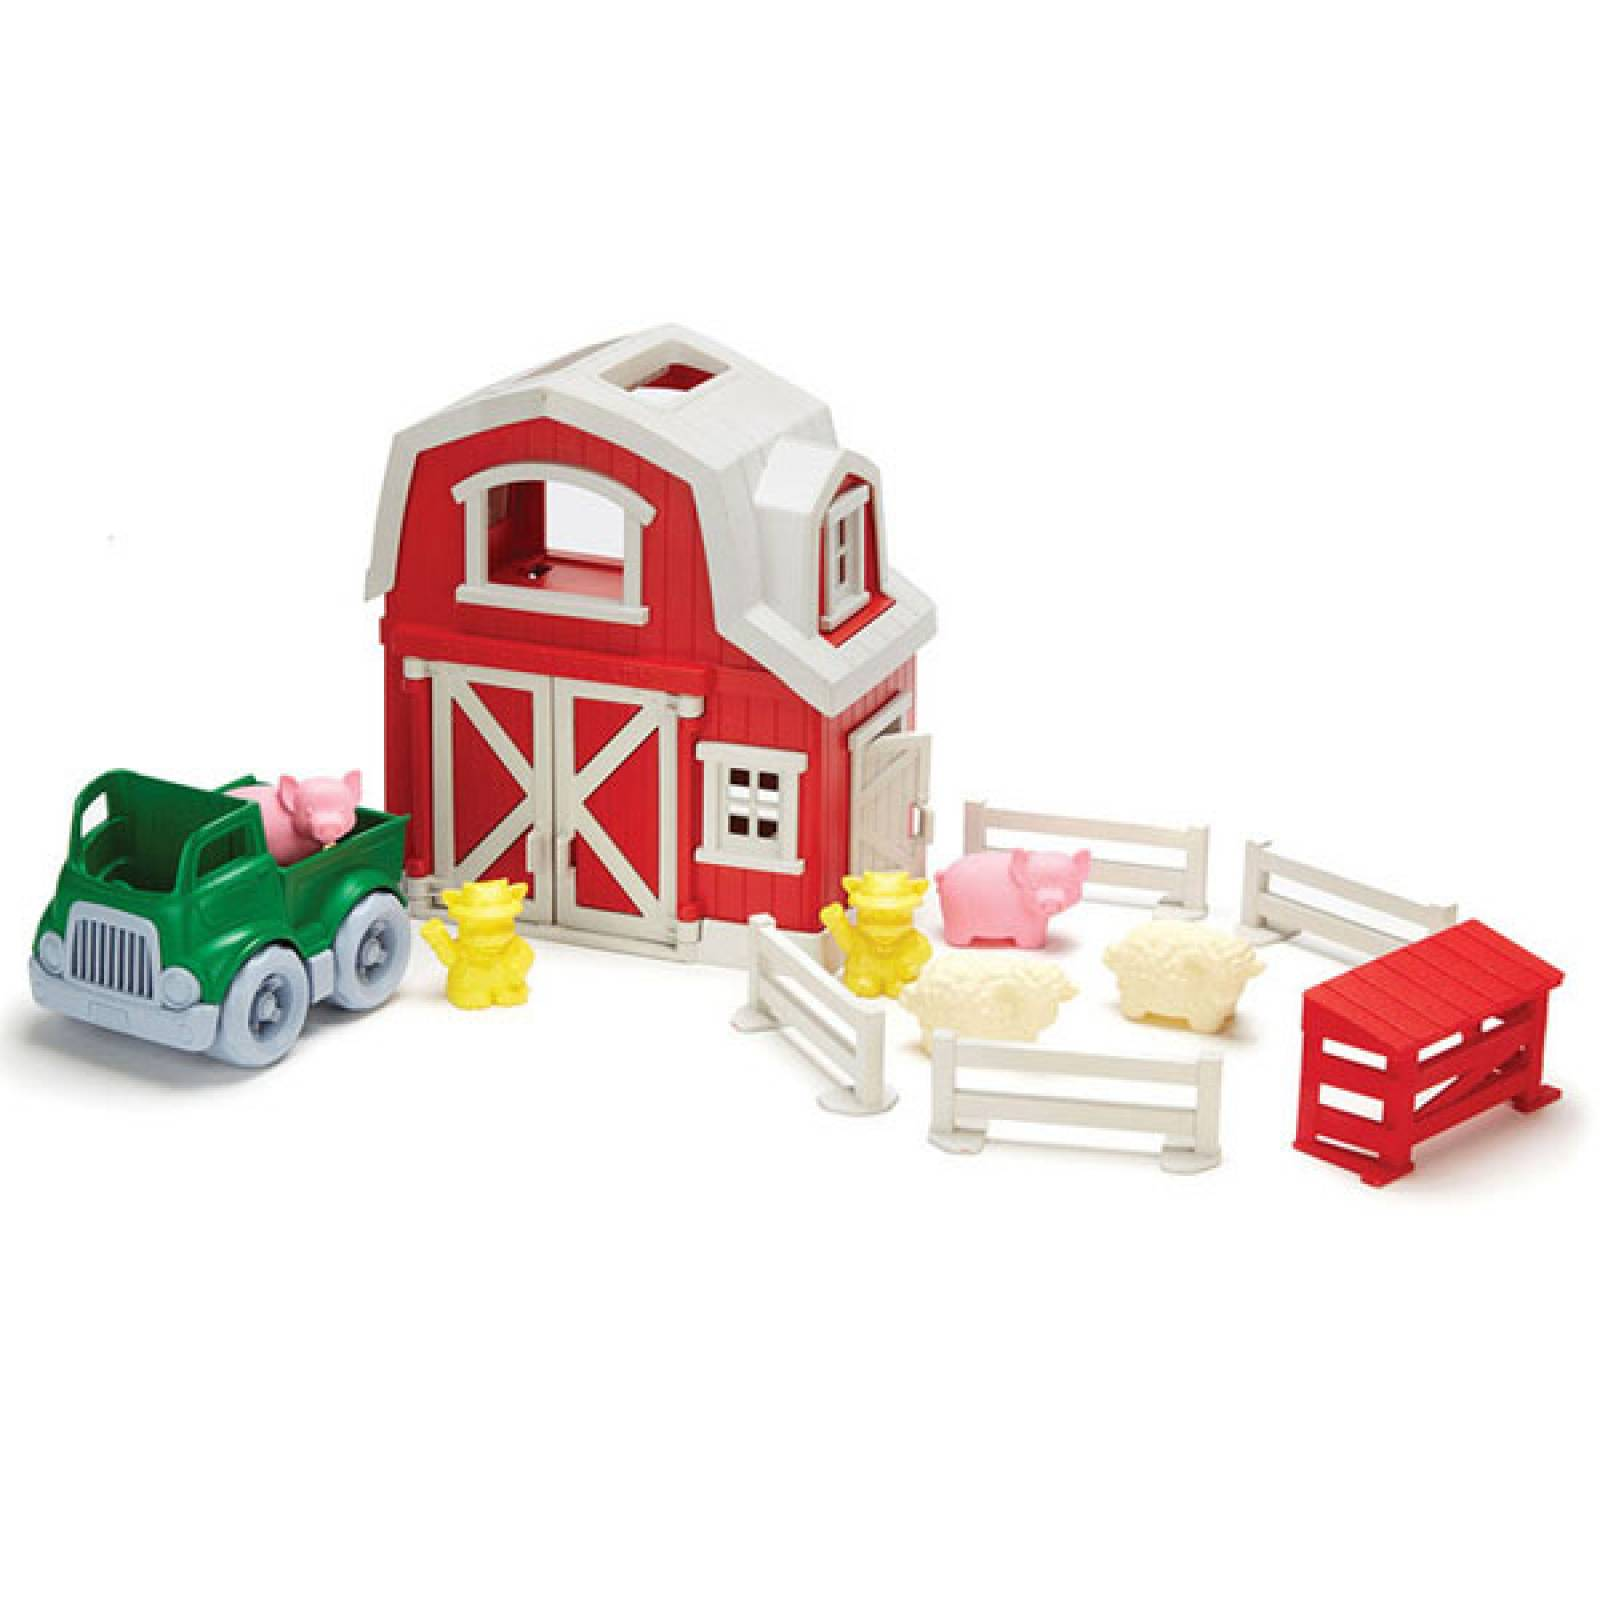 Farm Playset By Green Toys - Recycled Plastic 2-6yrs